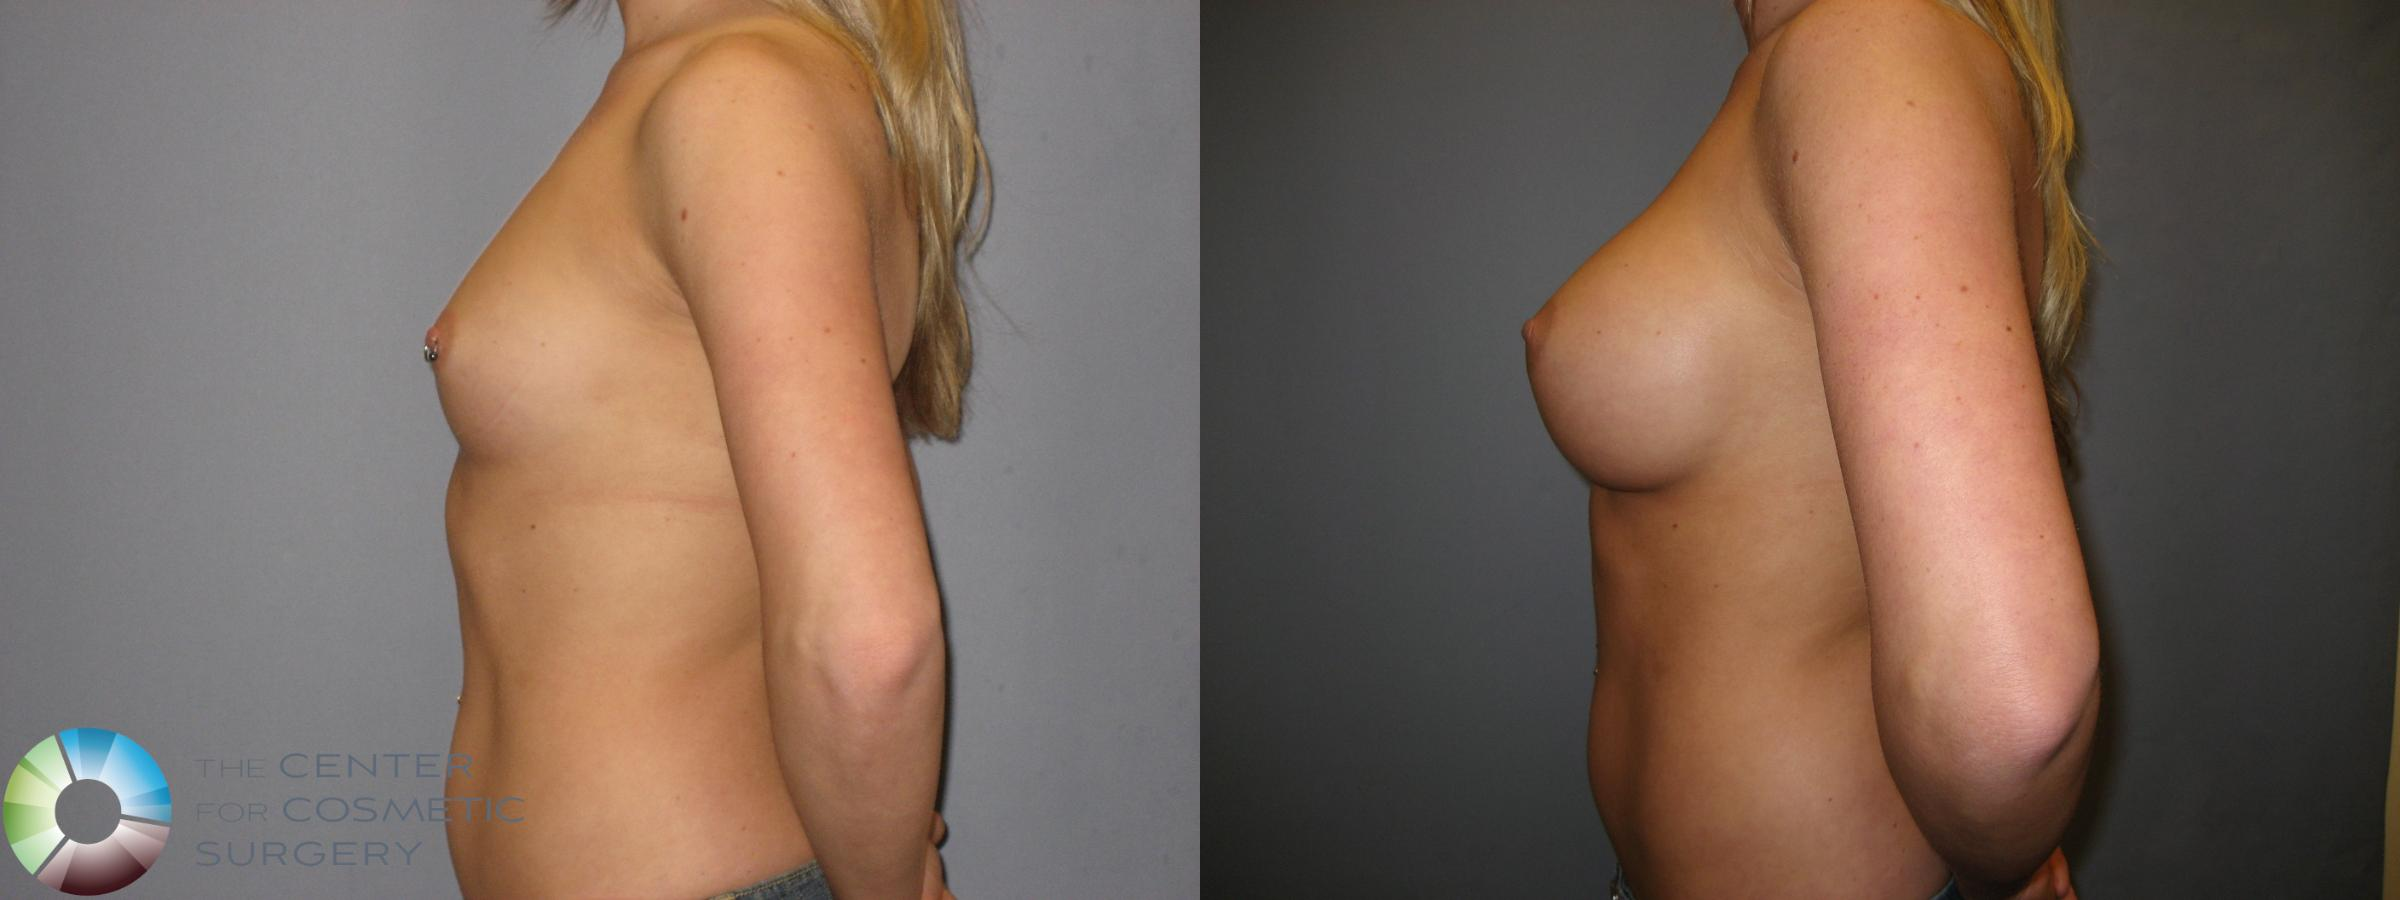 Breast Augmentation Case 172 Before & After View #3 | Golden, CO | The Center for Cosmetic Surgery